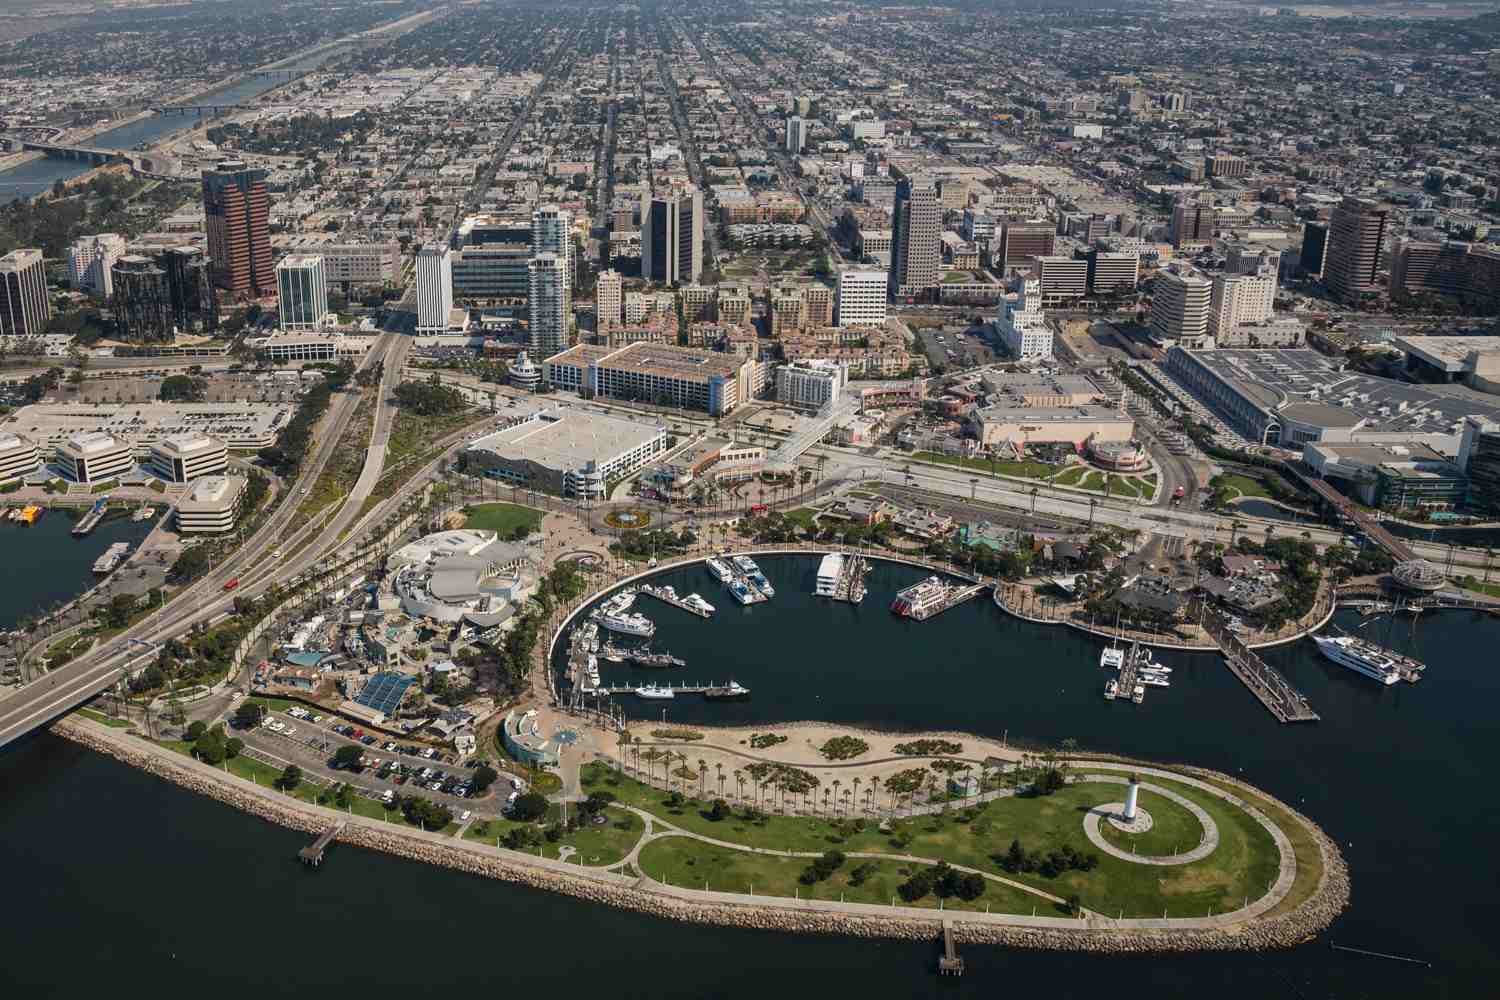 Aerial view of Downtown Long Beach, CA